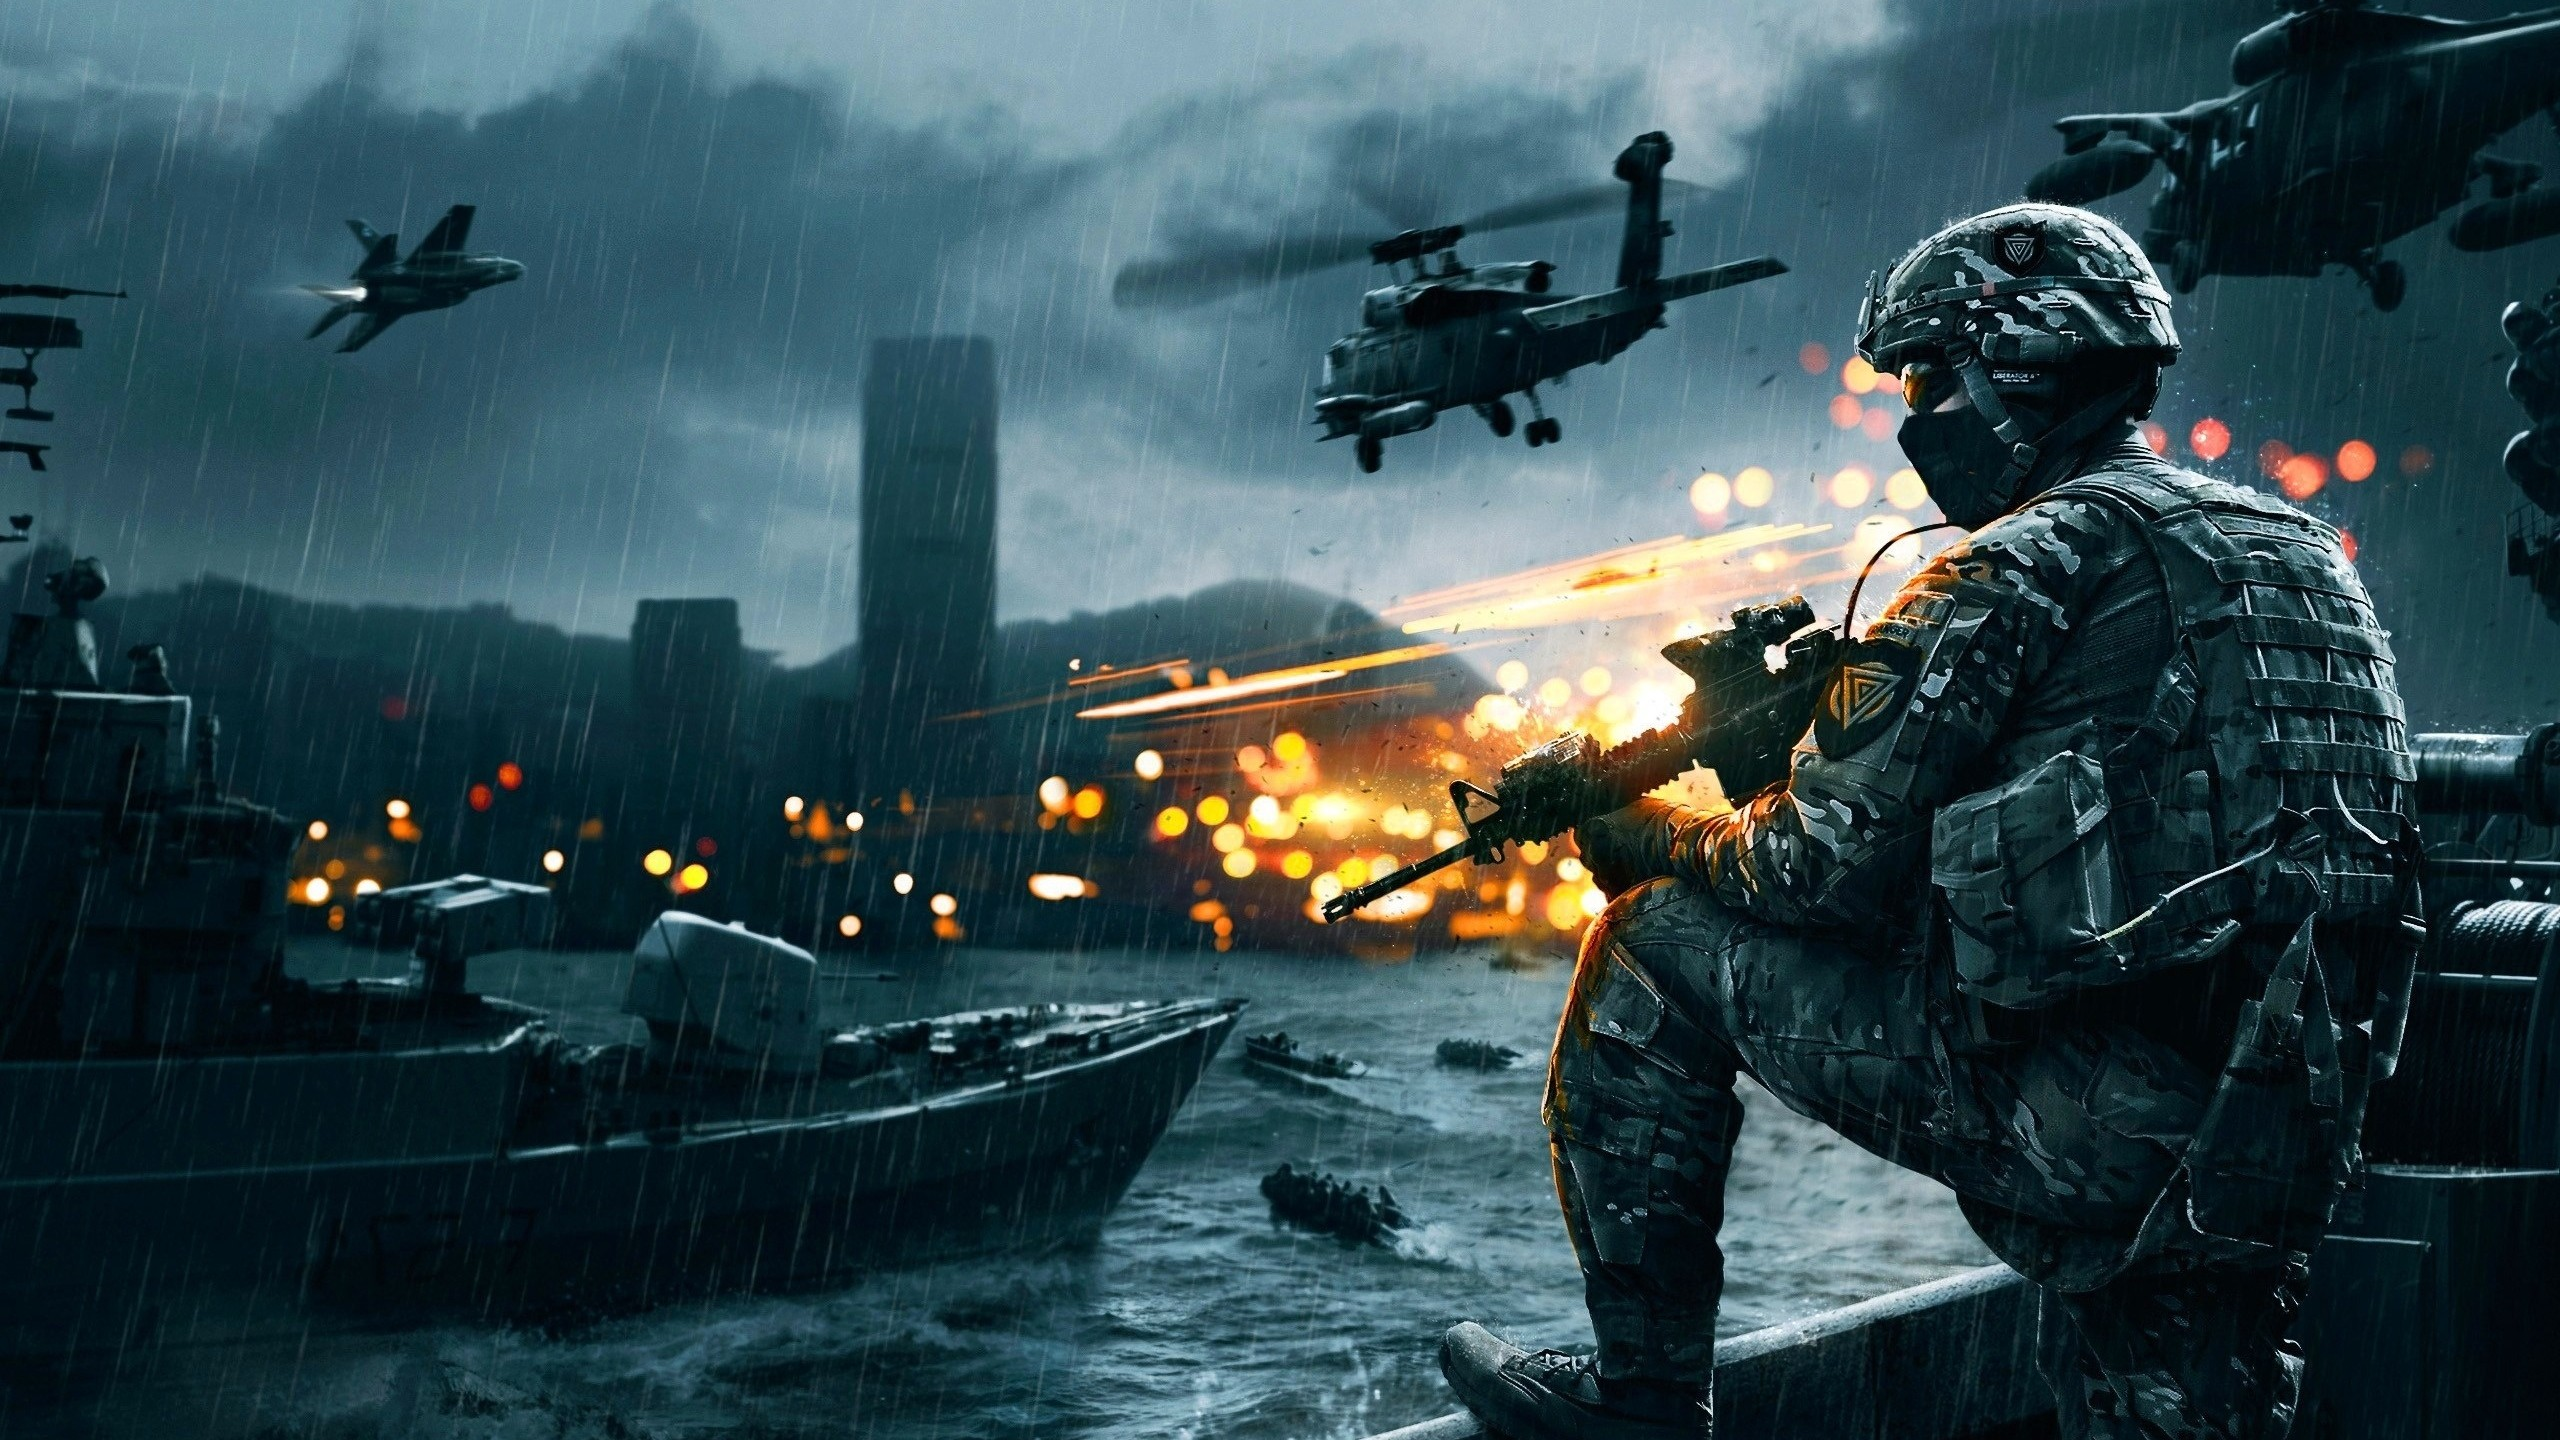 2560x1440 Preview wallpaper battlefield 4, game, ea digital illusions ce